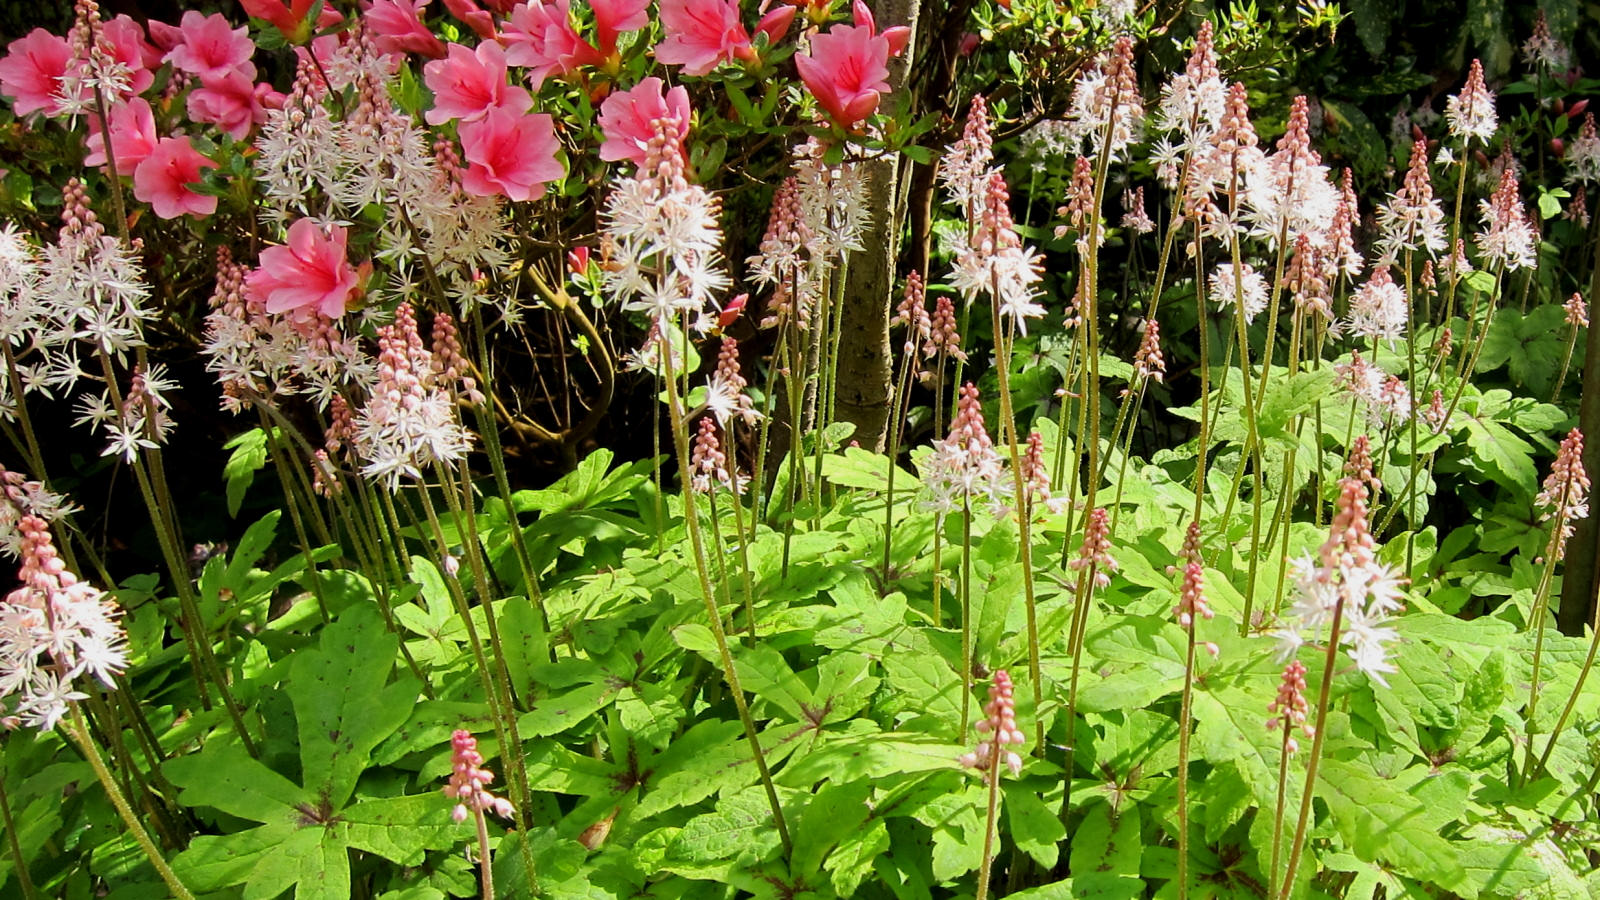 Photo of Tiarella 'Spring Symphony' with Azalea 'Kirin' courtesy of Flickr cc/Cultivar413